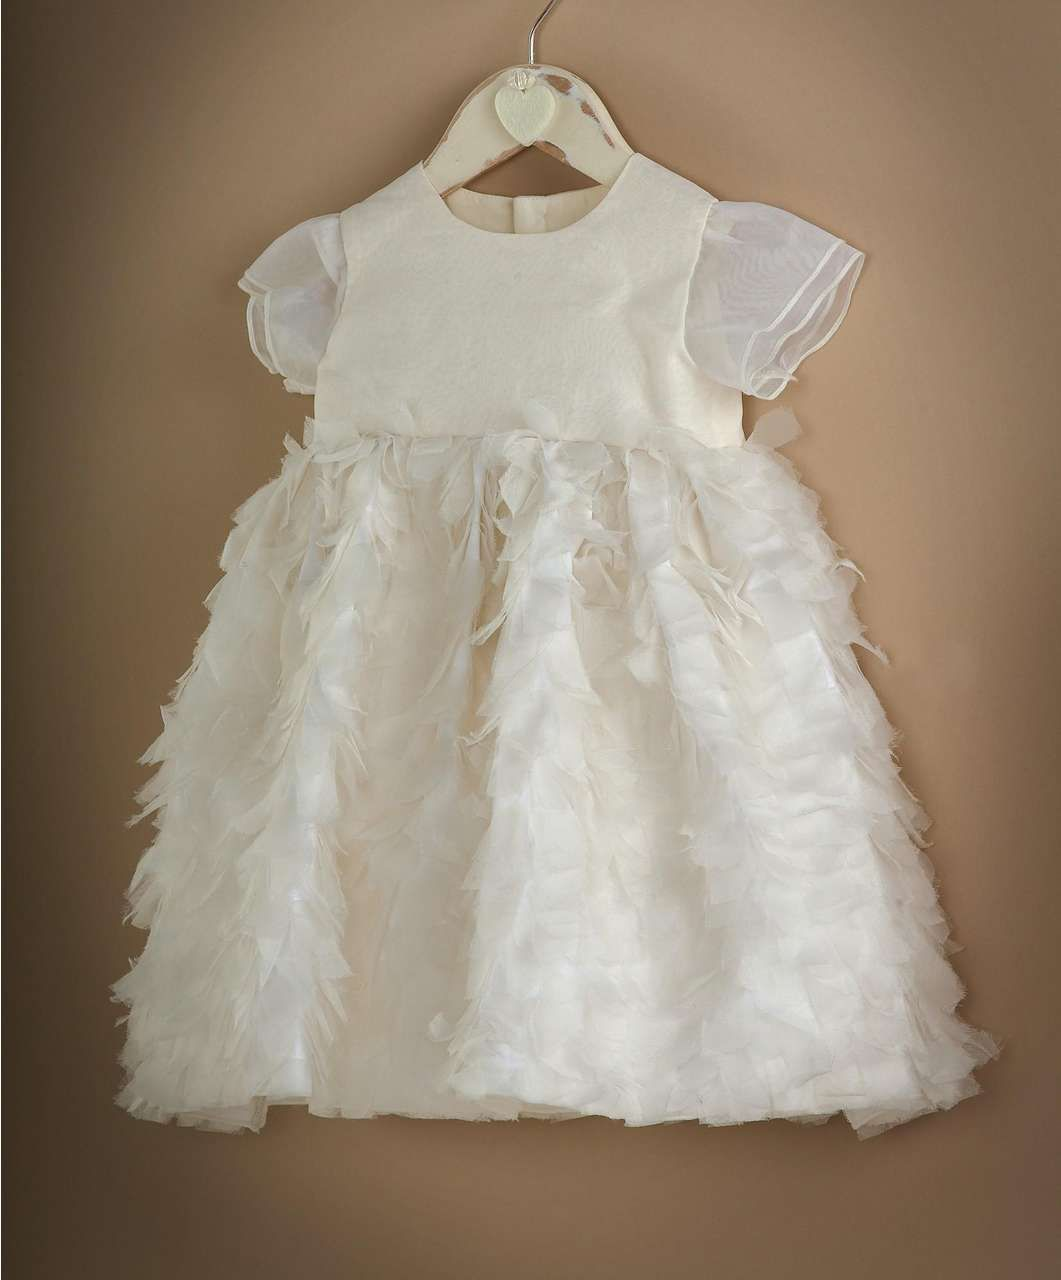 Clothes, Shoes & Accessories Dresses Realistic 0-3 Months Girls Dress From Mamas And Papas